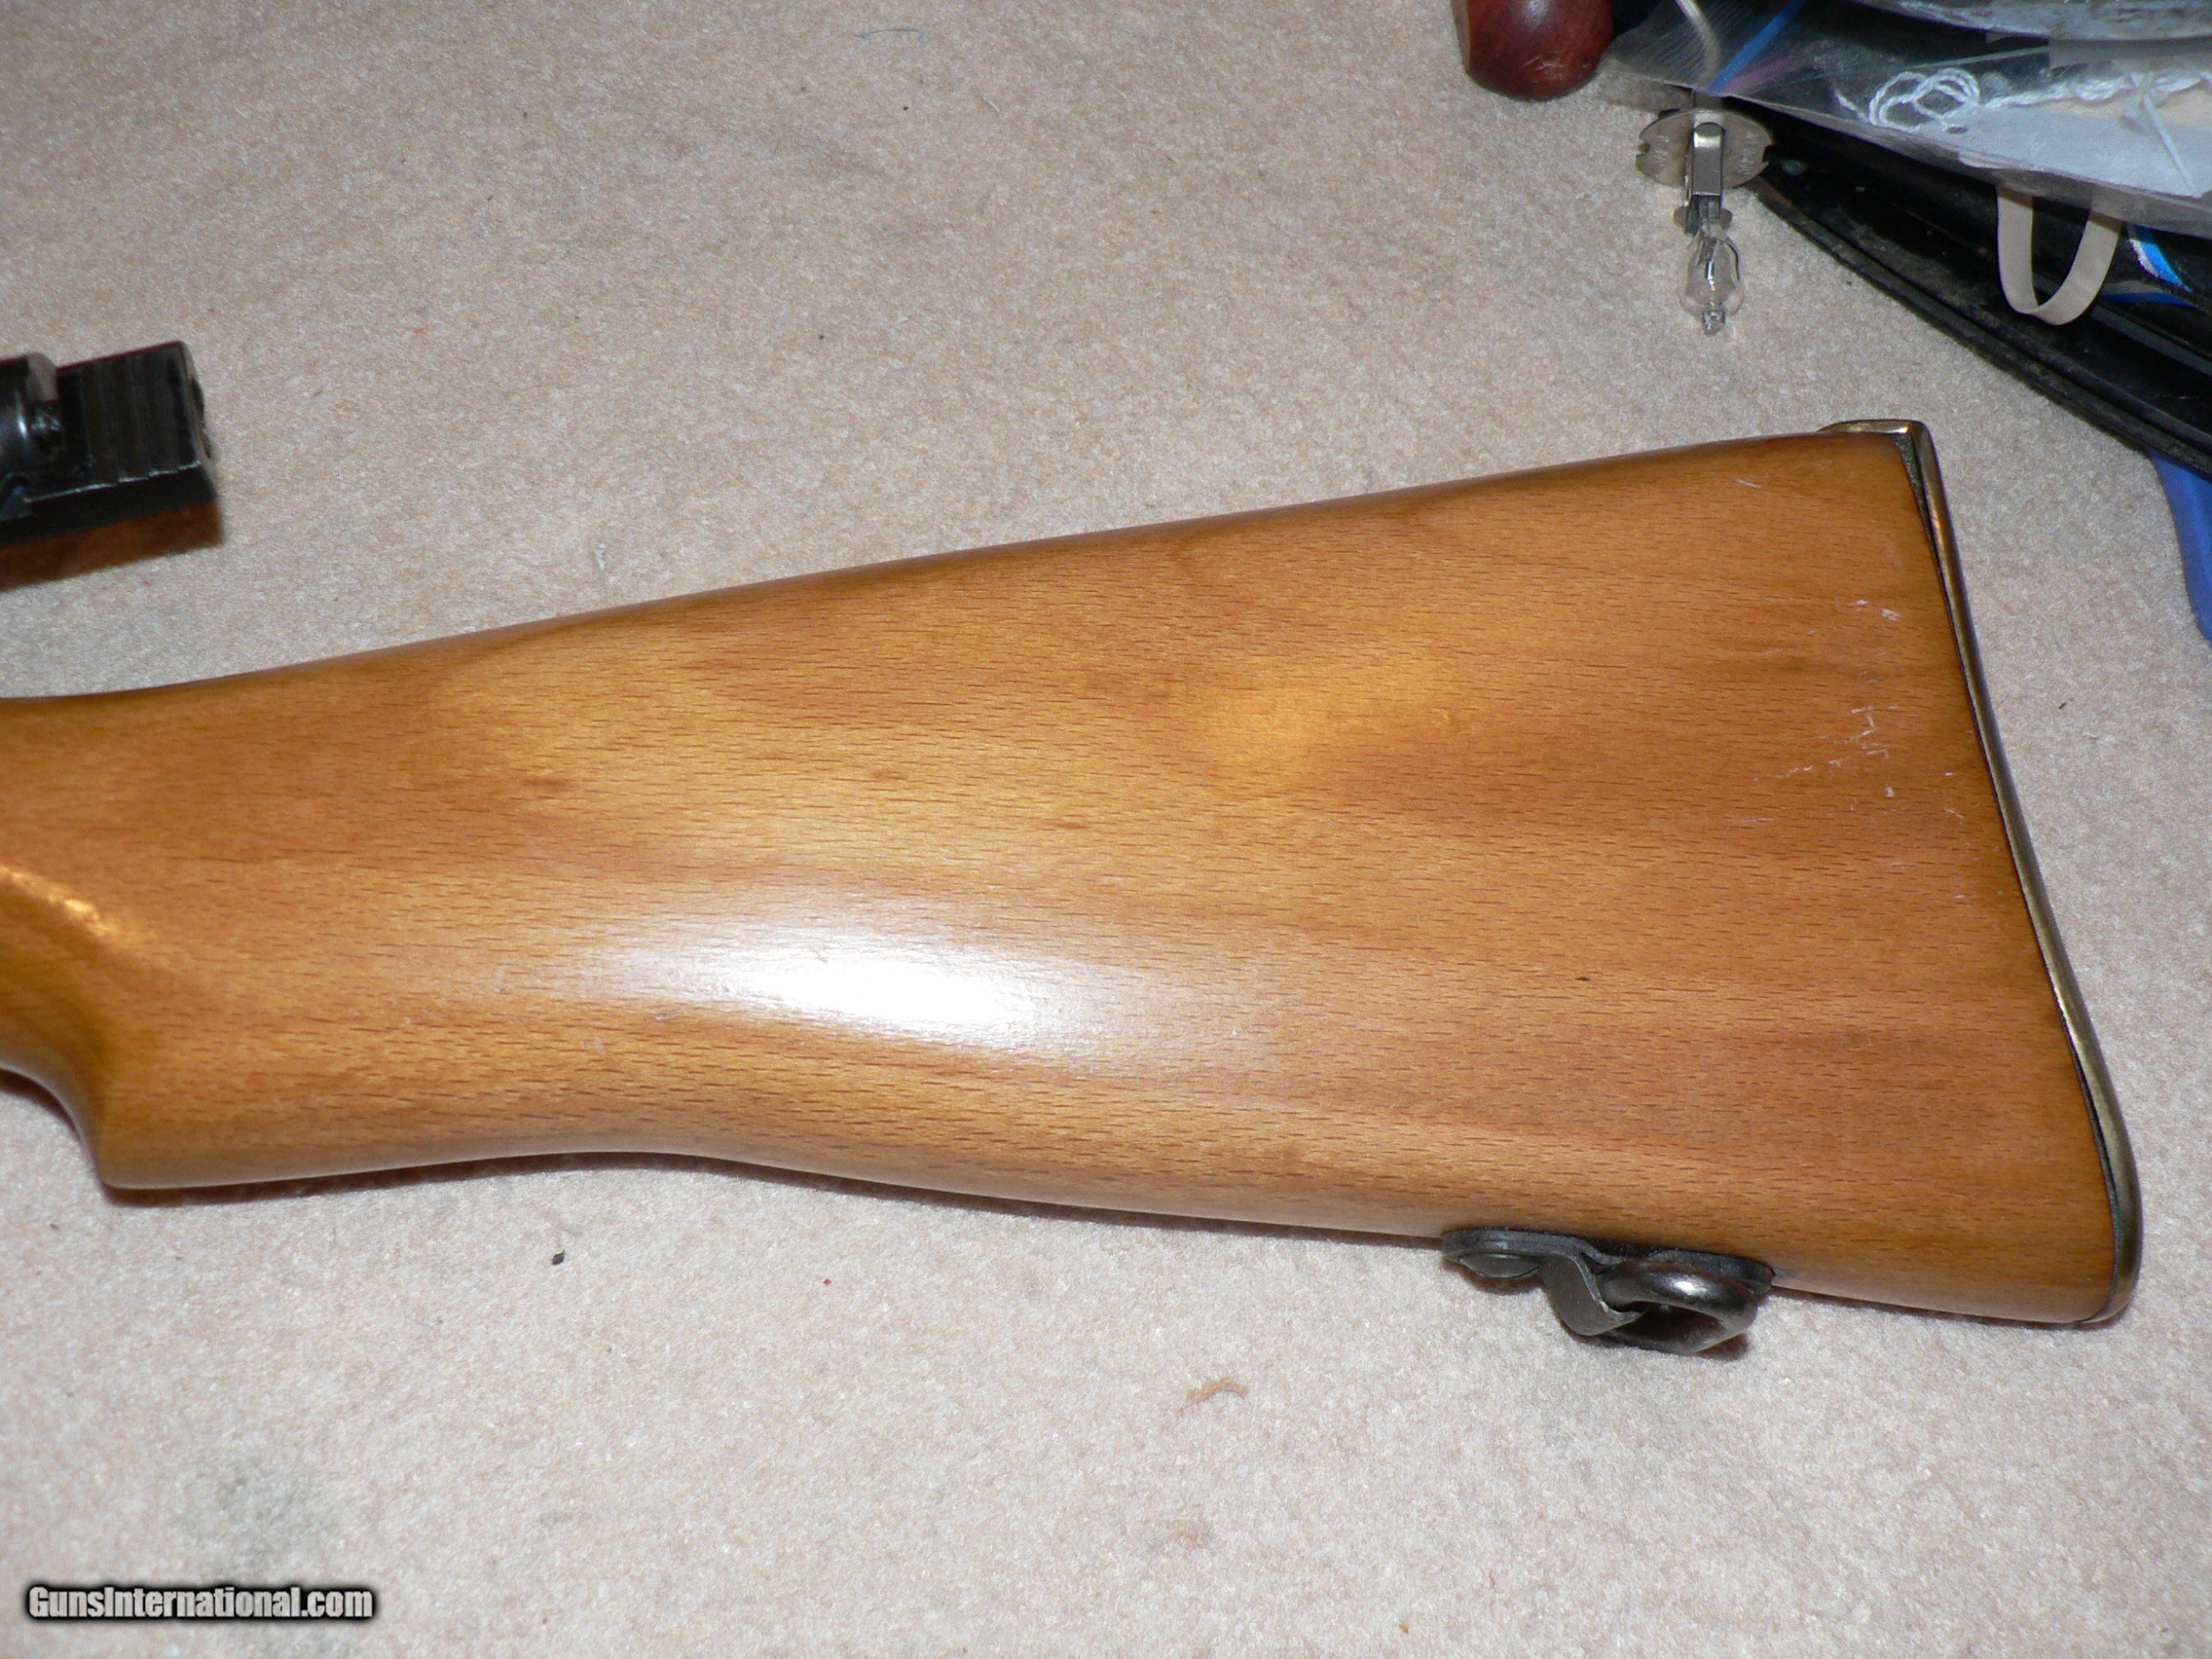 Enfield No  4 Mark II 303 British rifle for sale